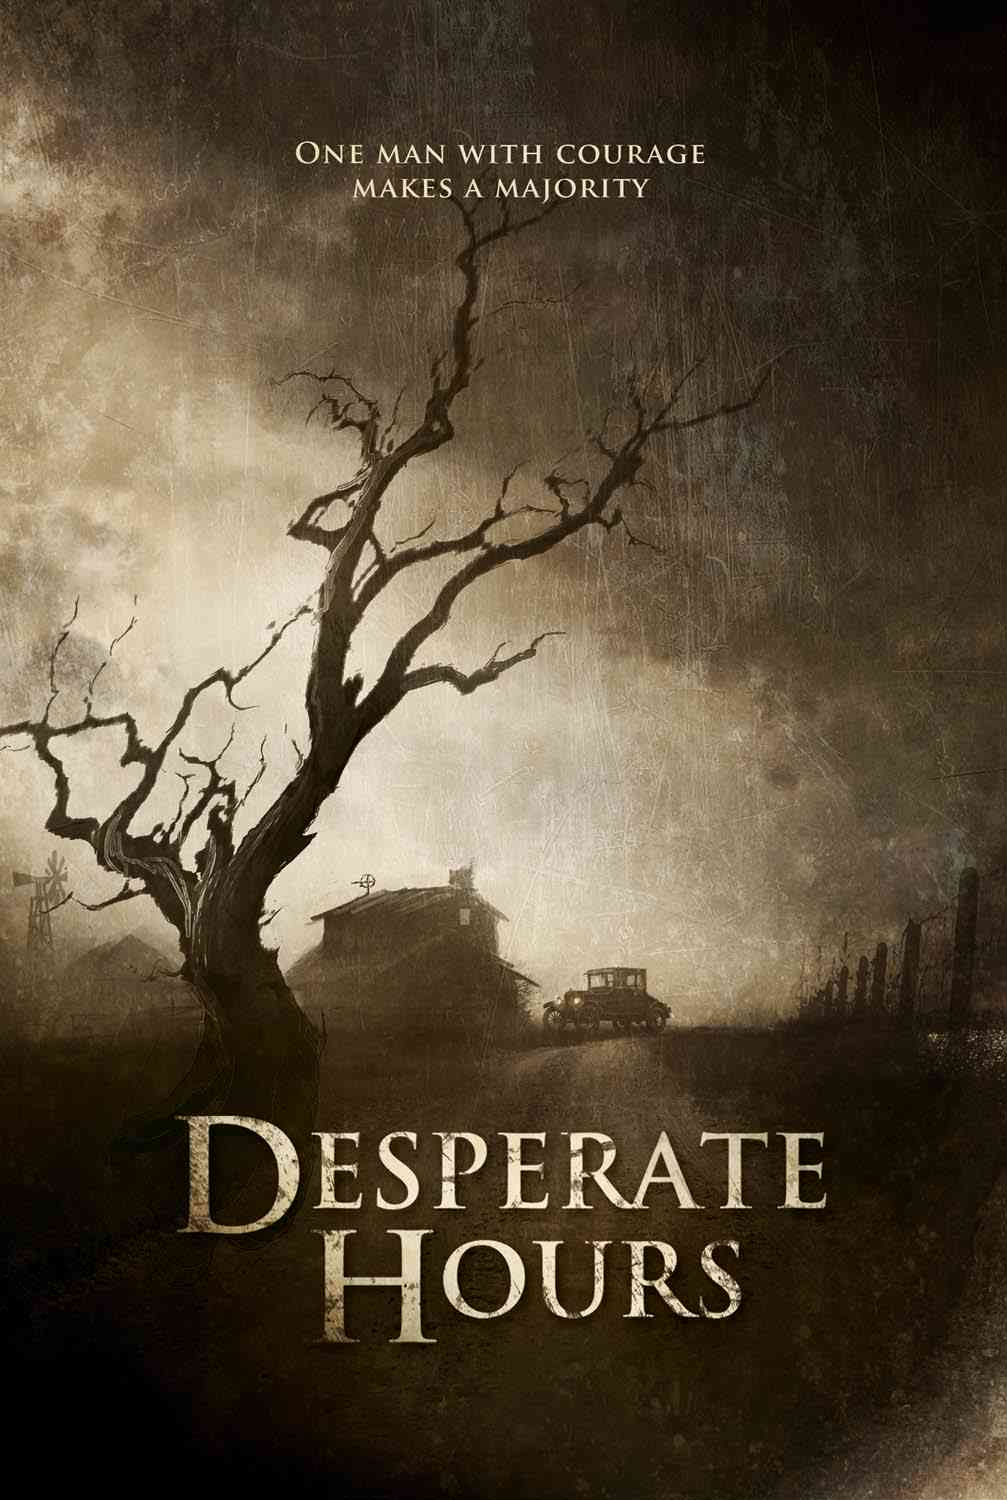 DesperateHours_Comp01